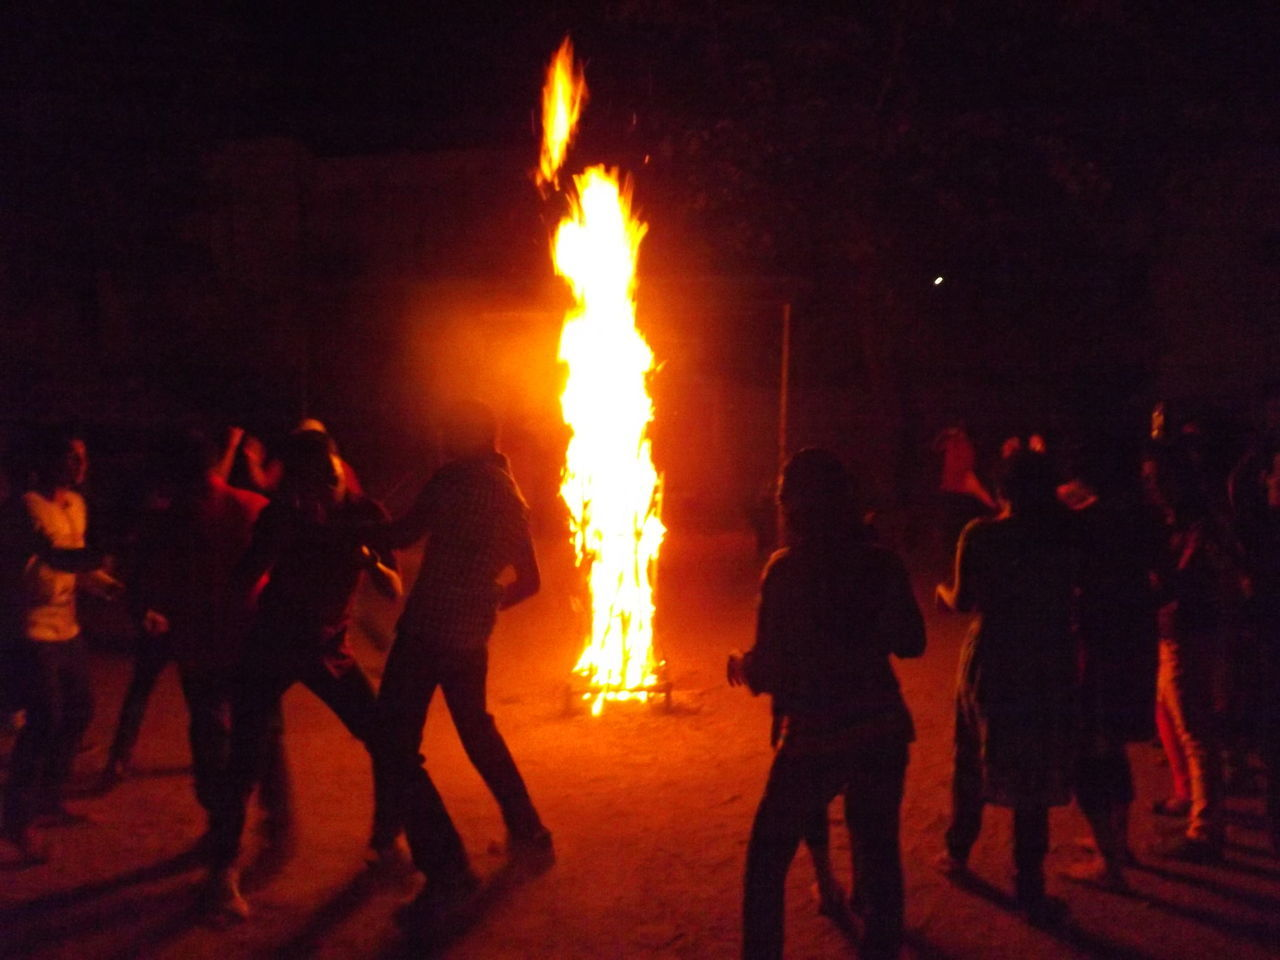 burning, flame, real people, night, men, heat - temperature, medium group of people, leisure activity, outdoors, women, bonfire, event, celebration, arts culture and entertainment, standing, lifestyles, performance, togetherness, crowd, period costume, people